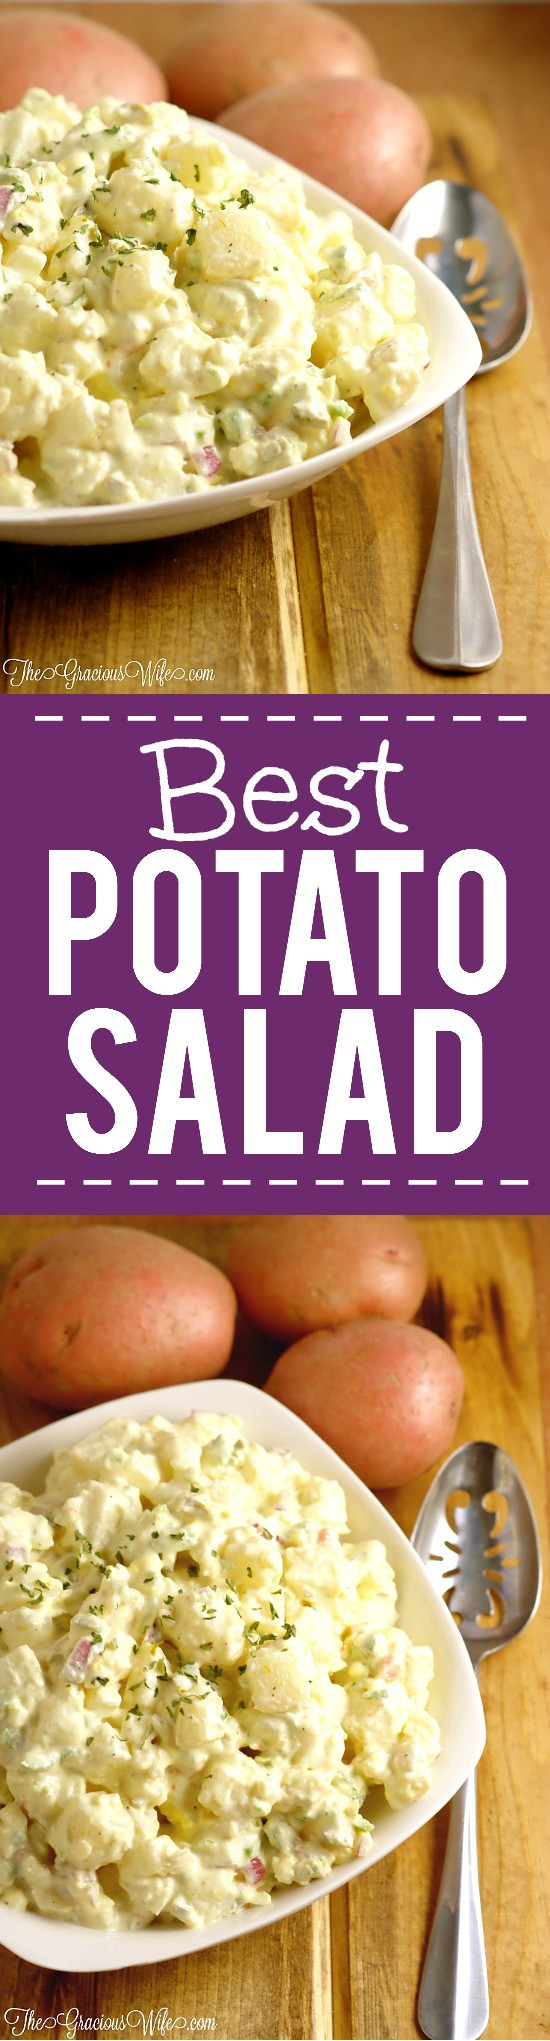 Best Potato Salad Recipe - Easy classic southern potato salad recipe. I never liked potato salad until I tried this recipe. It's seriously the BEST potato salad recipe! My favorite.. Great for a crowd and for potlucks.